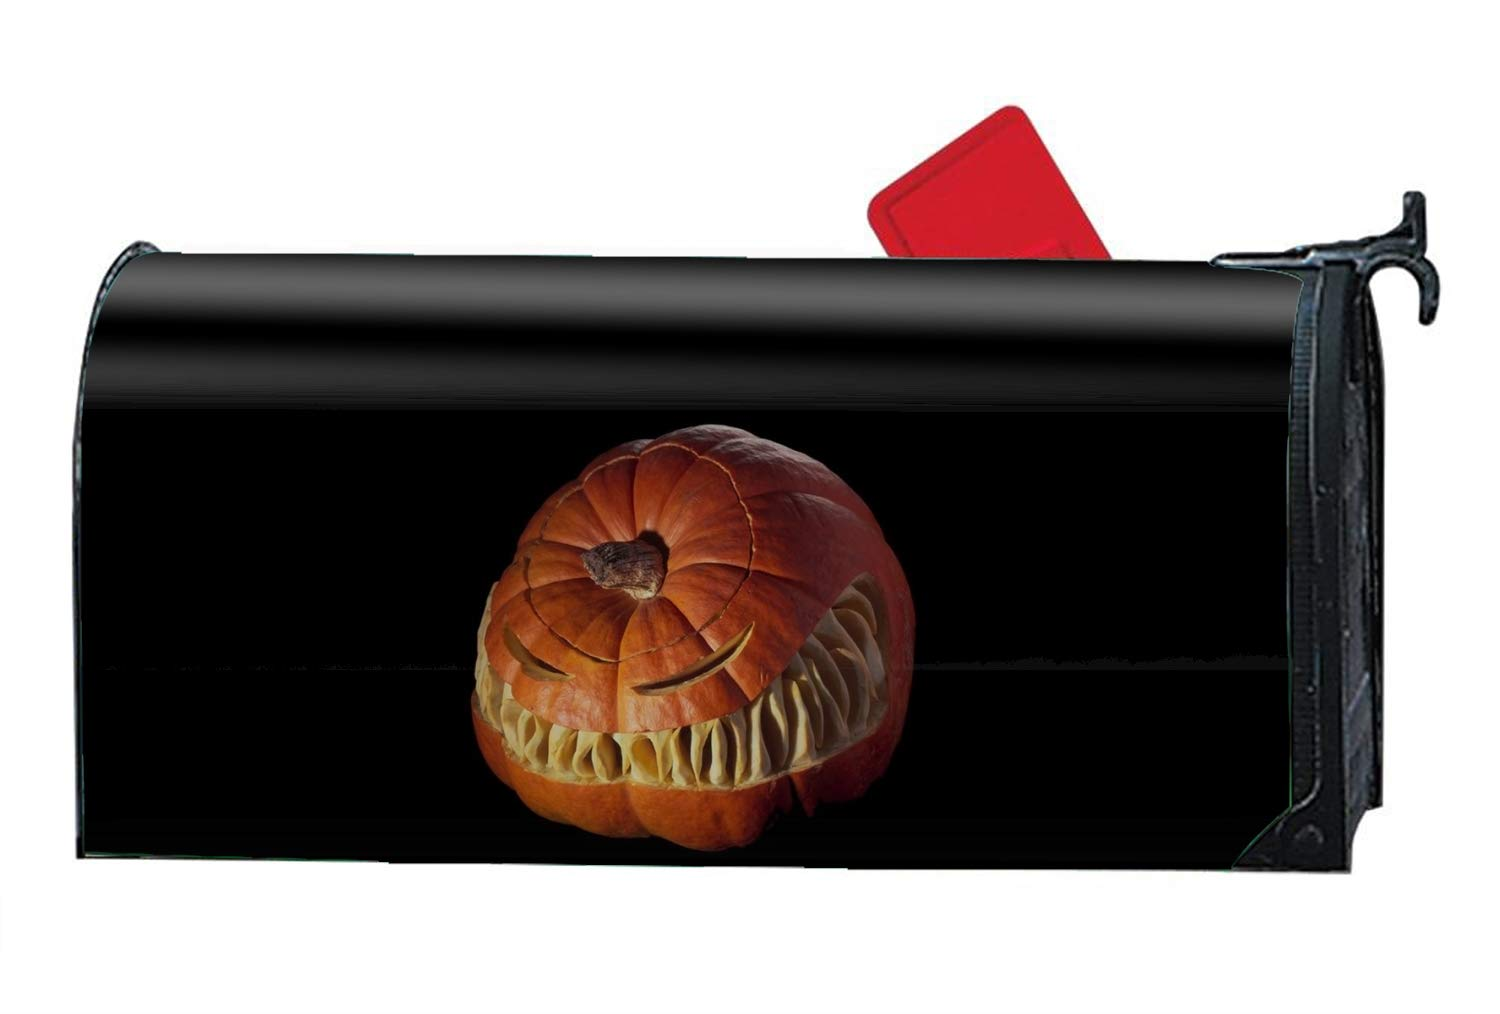 Niaocpwy Holiday Halloween Pumpkin - Mailbox Makeover - Perfect Home Garden Gecor Magnetic Cover